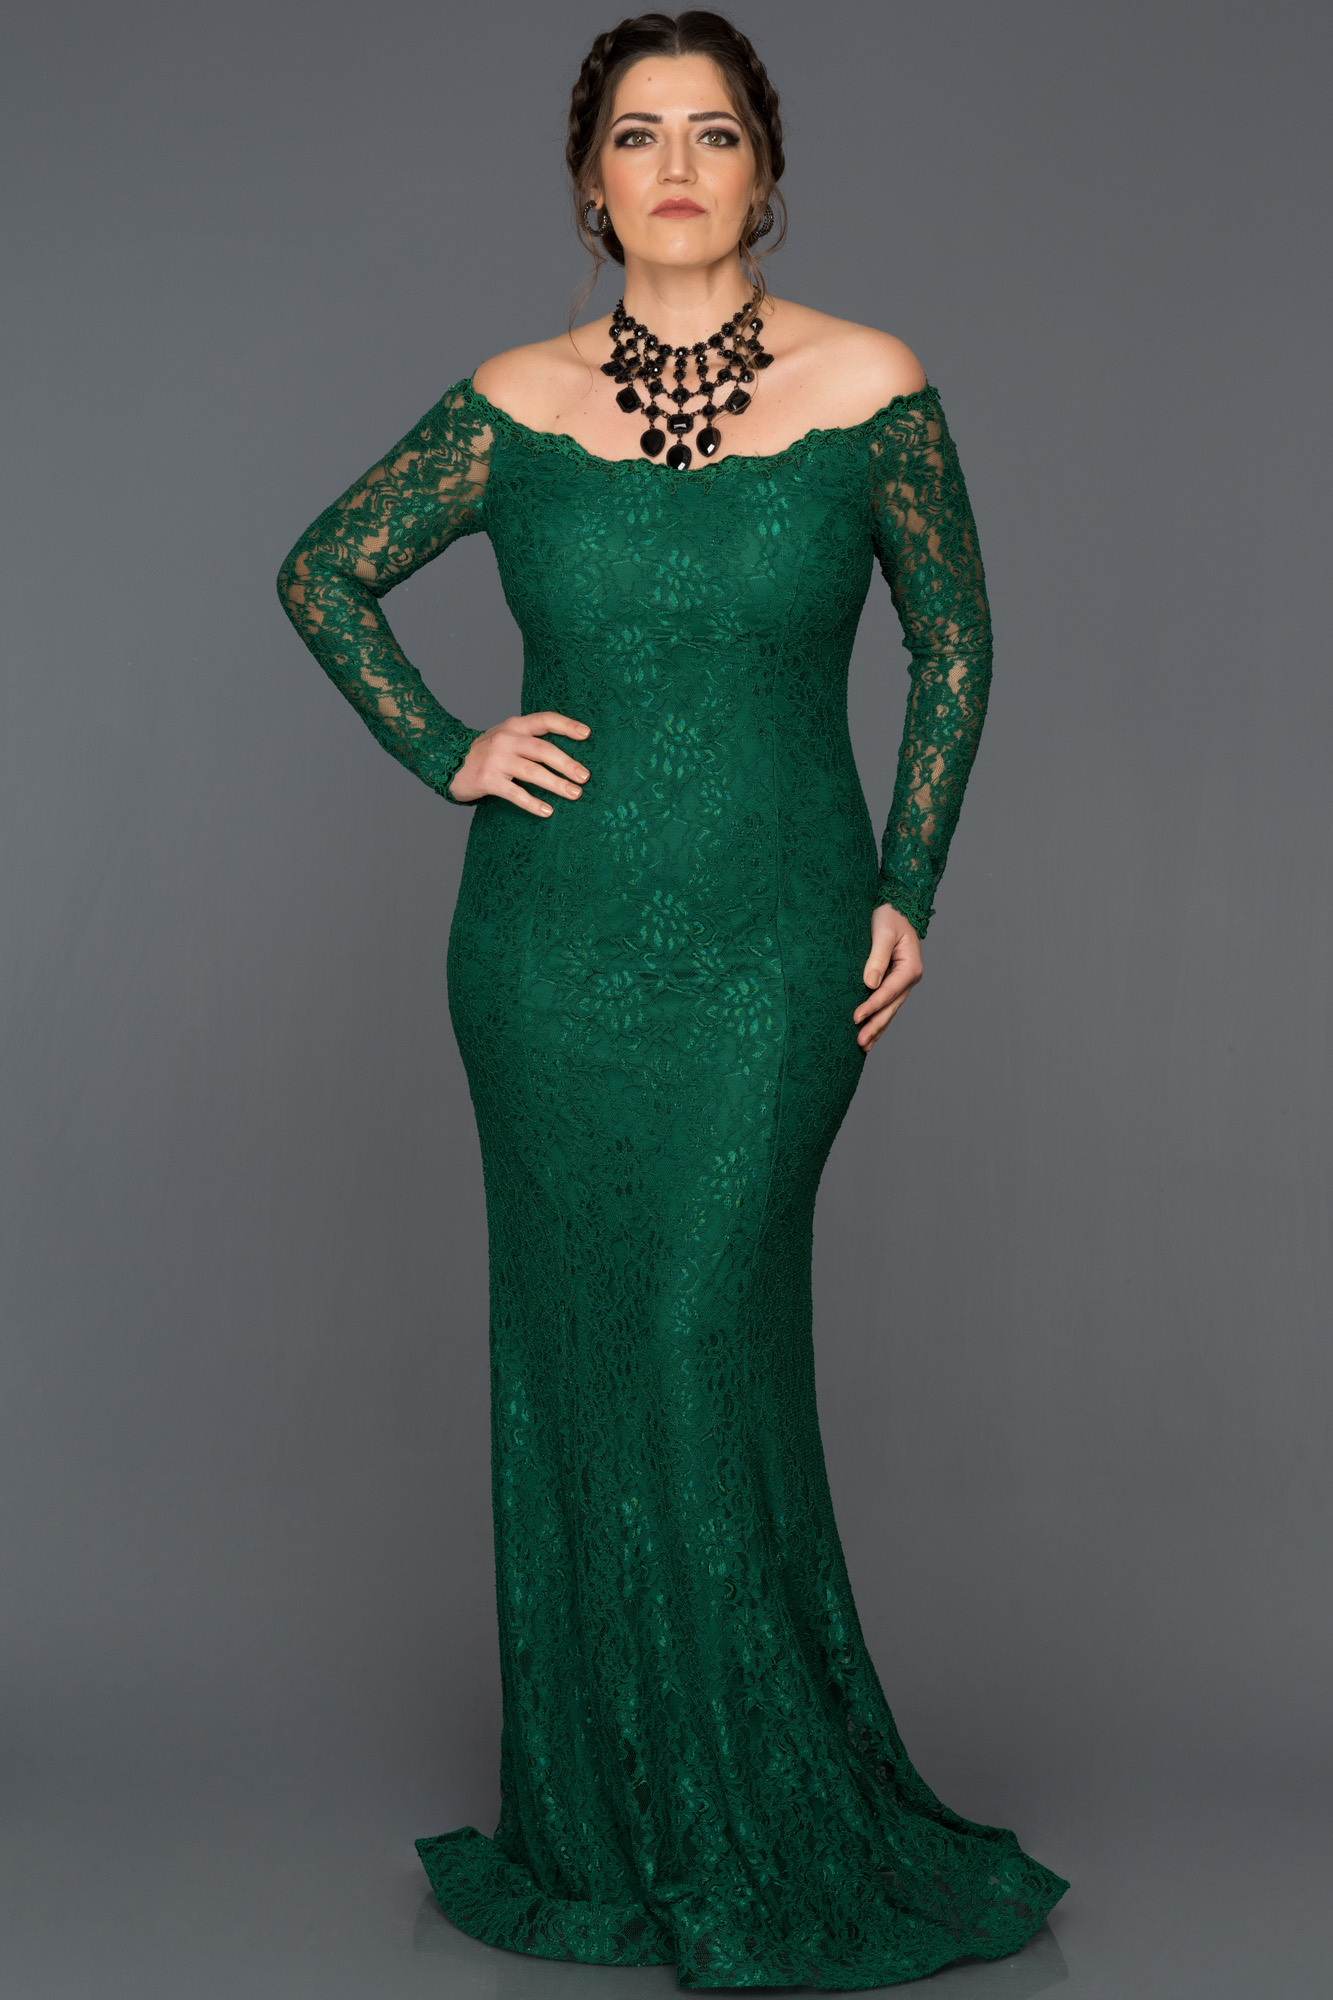 Plus Size Emerald Green Evening Gown – DACC